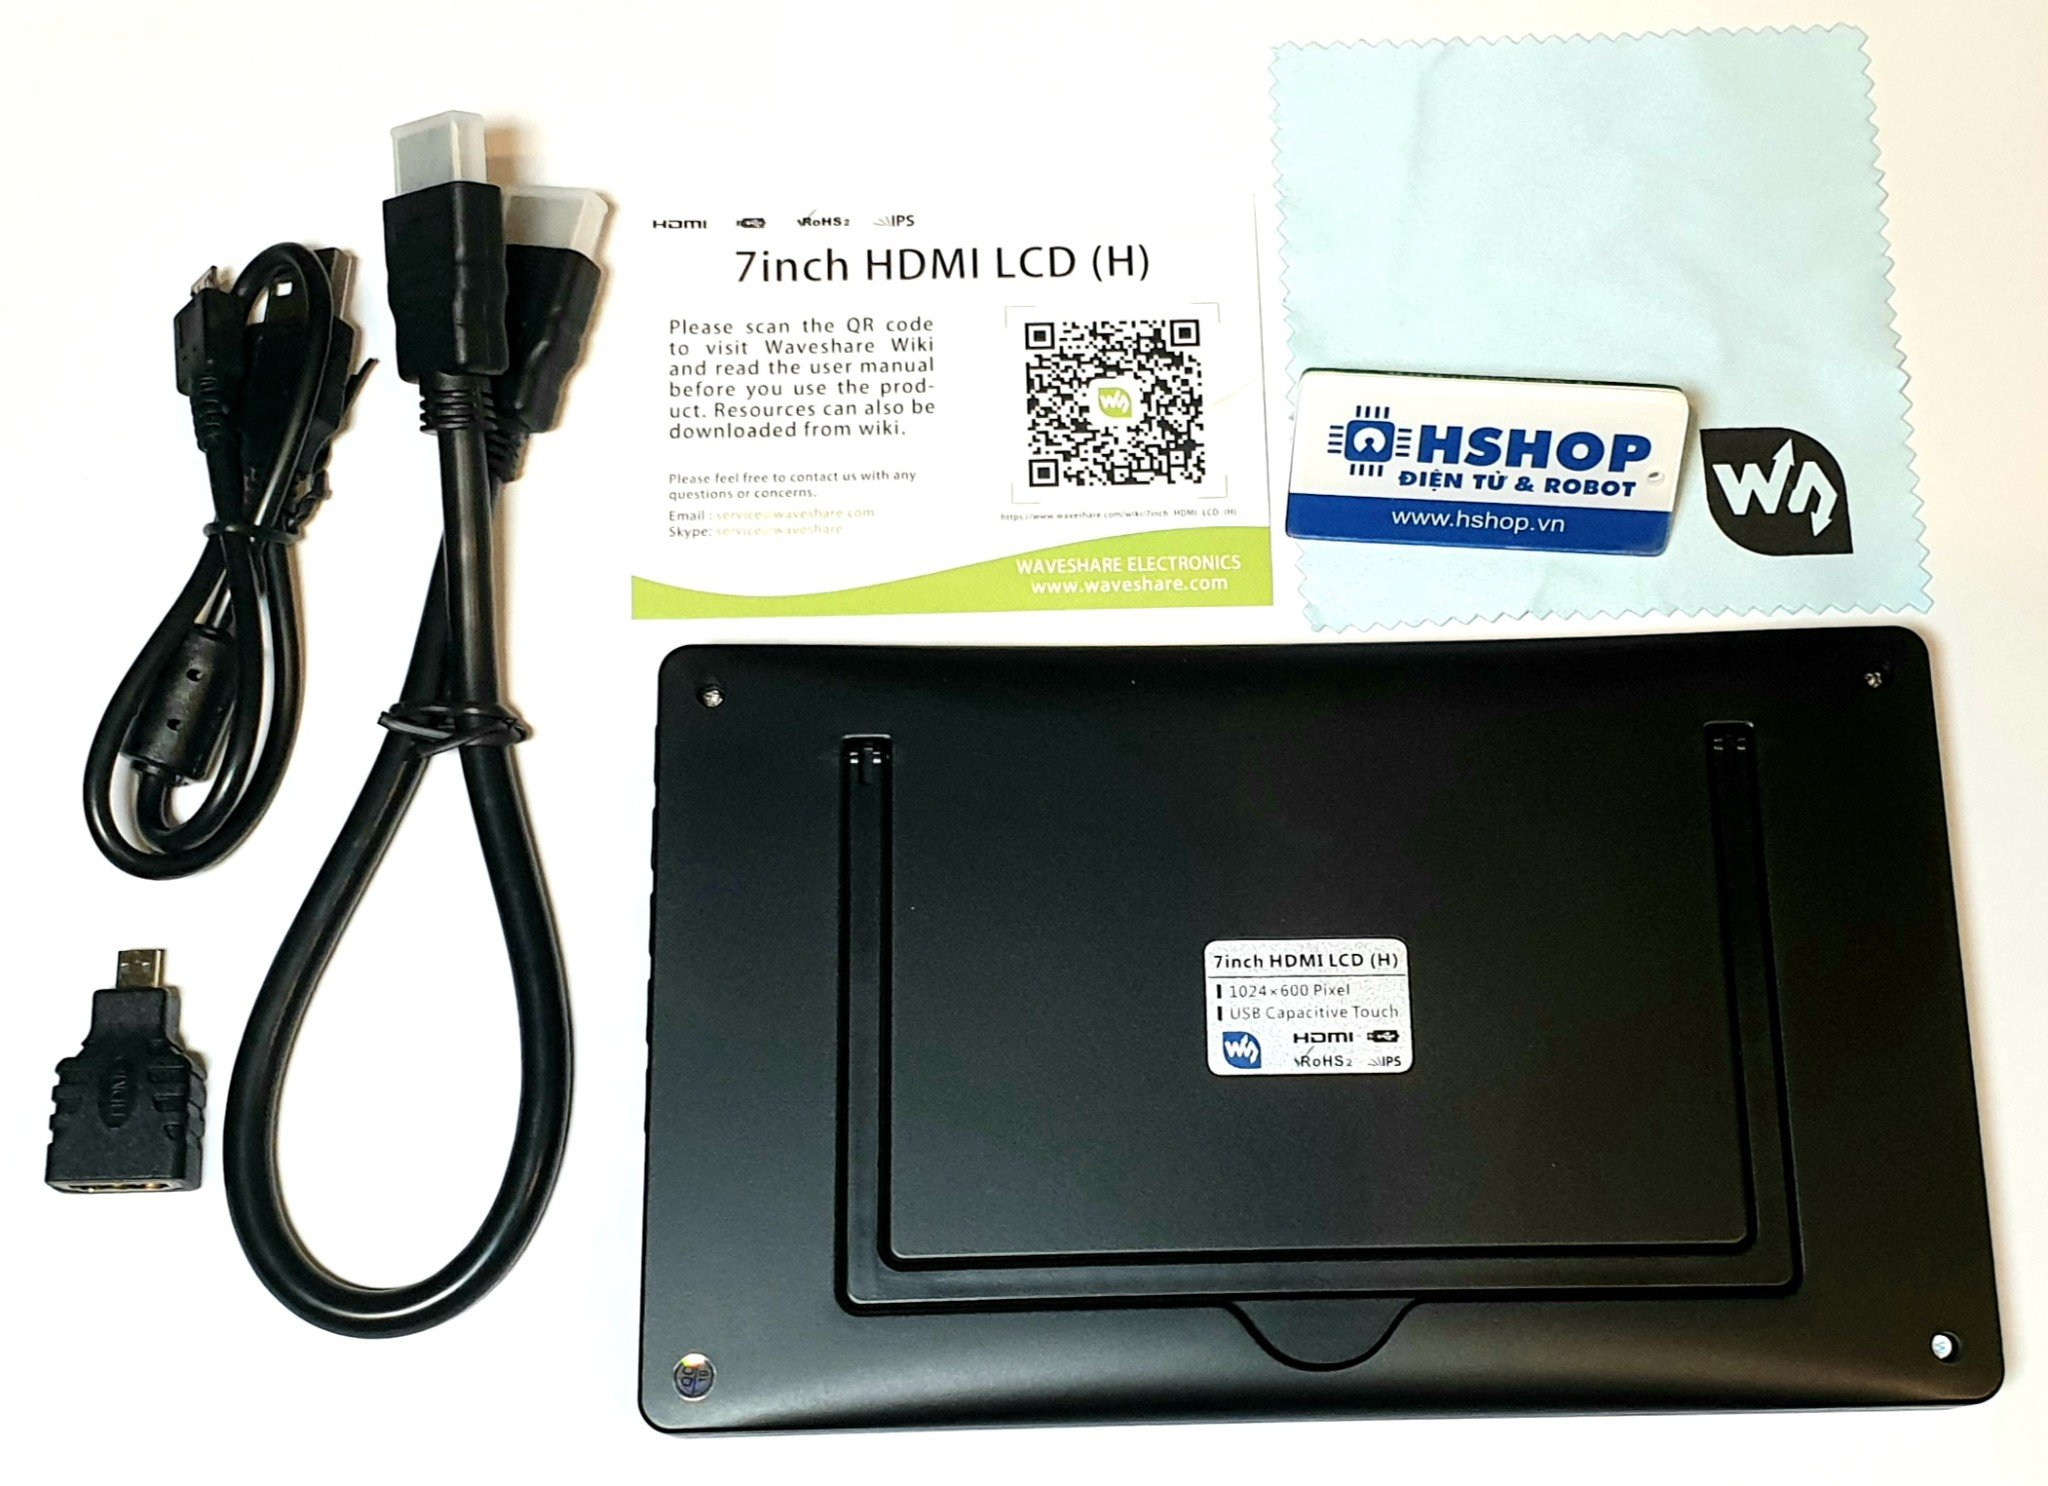 Màn hình Waveshare 7inch HDMI Capacitive Touch Screen LCD (H)